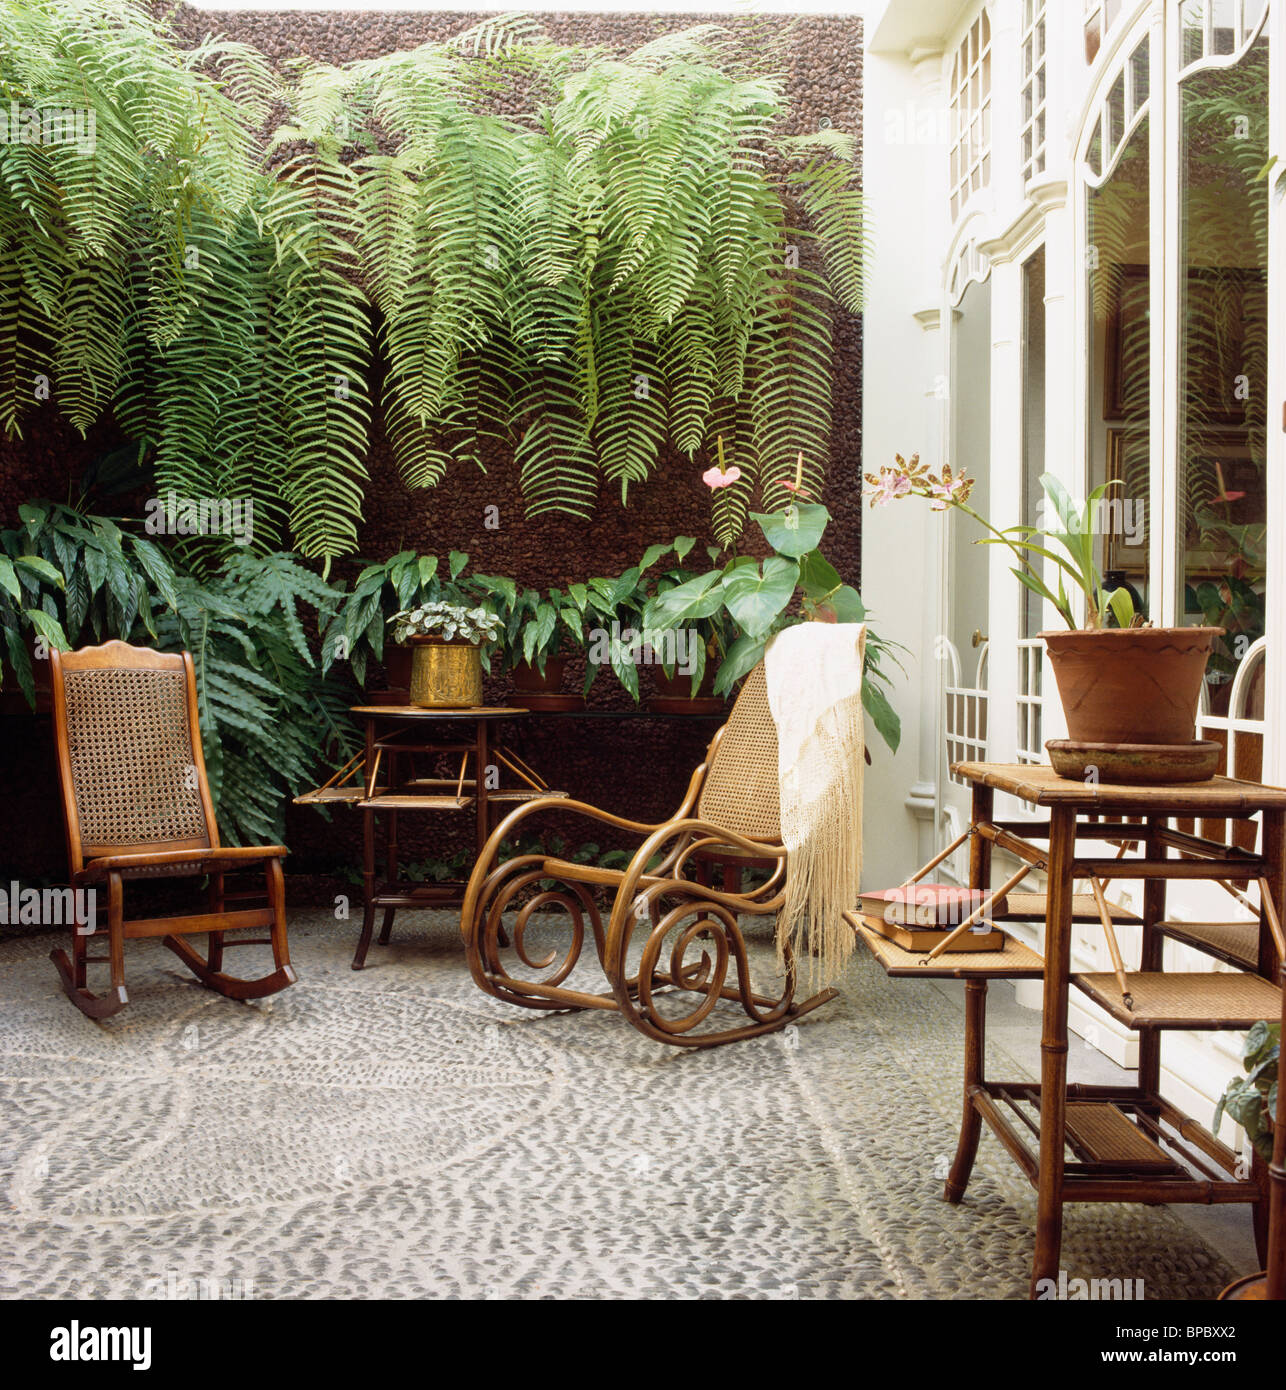 Bentwood rocking chair value - Antique Bentwood Rocking Chair And Planter S Chair On Small Townhouse Courtyard With Pebble Mosaic Paving And